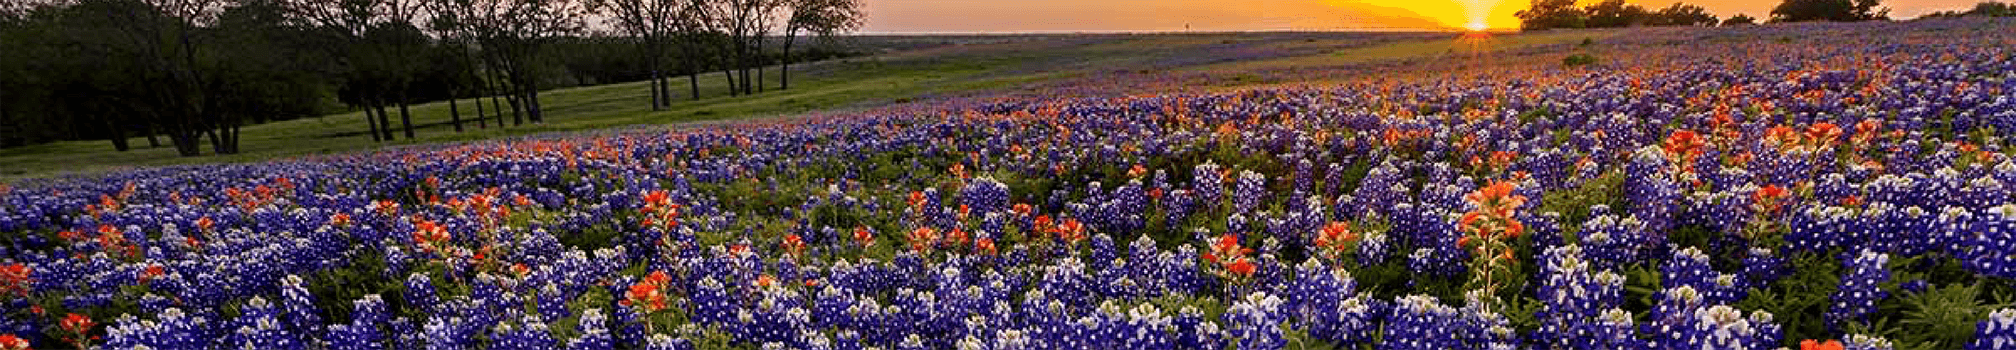 texas-bluebonnets